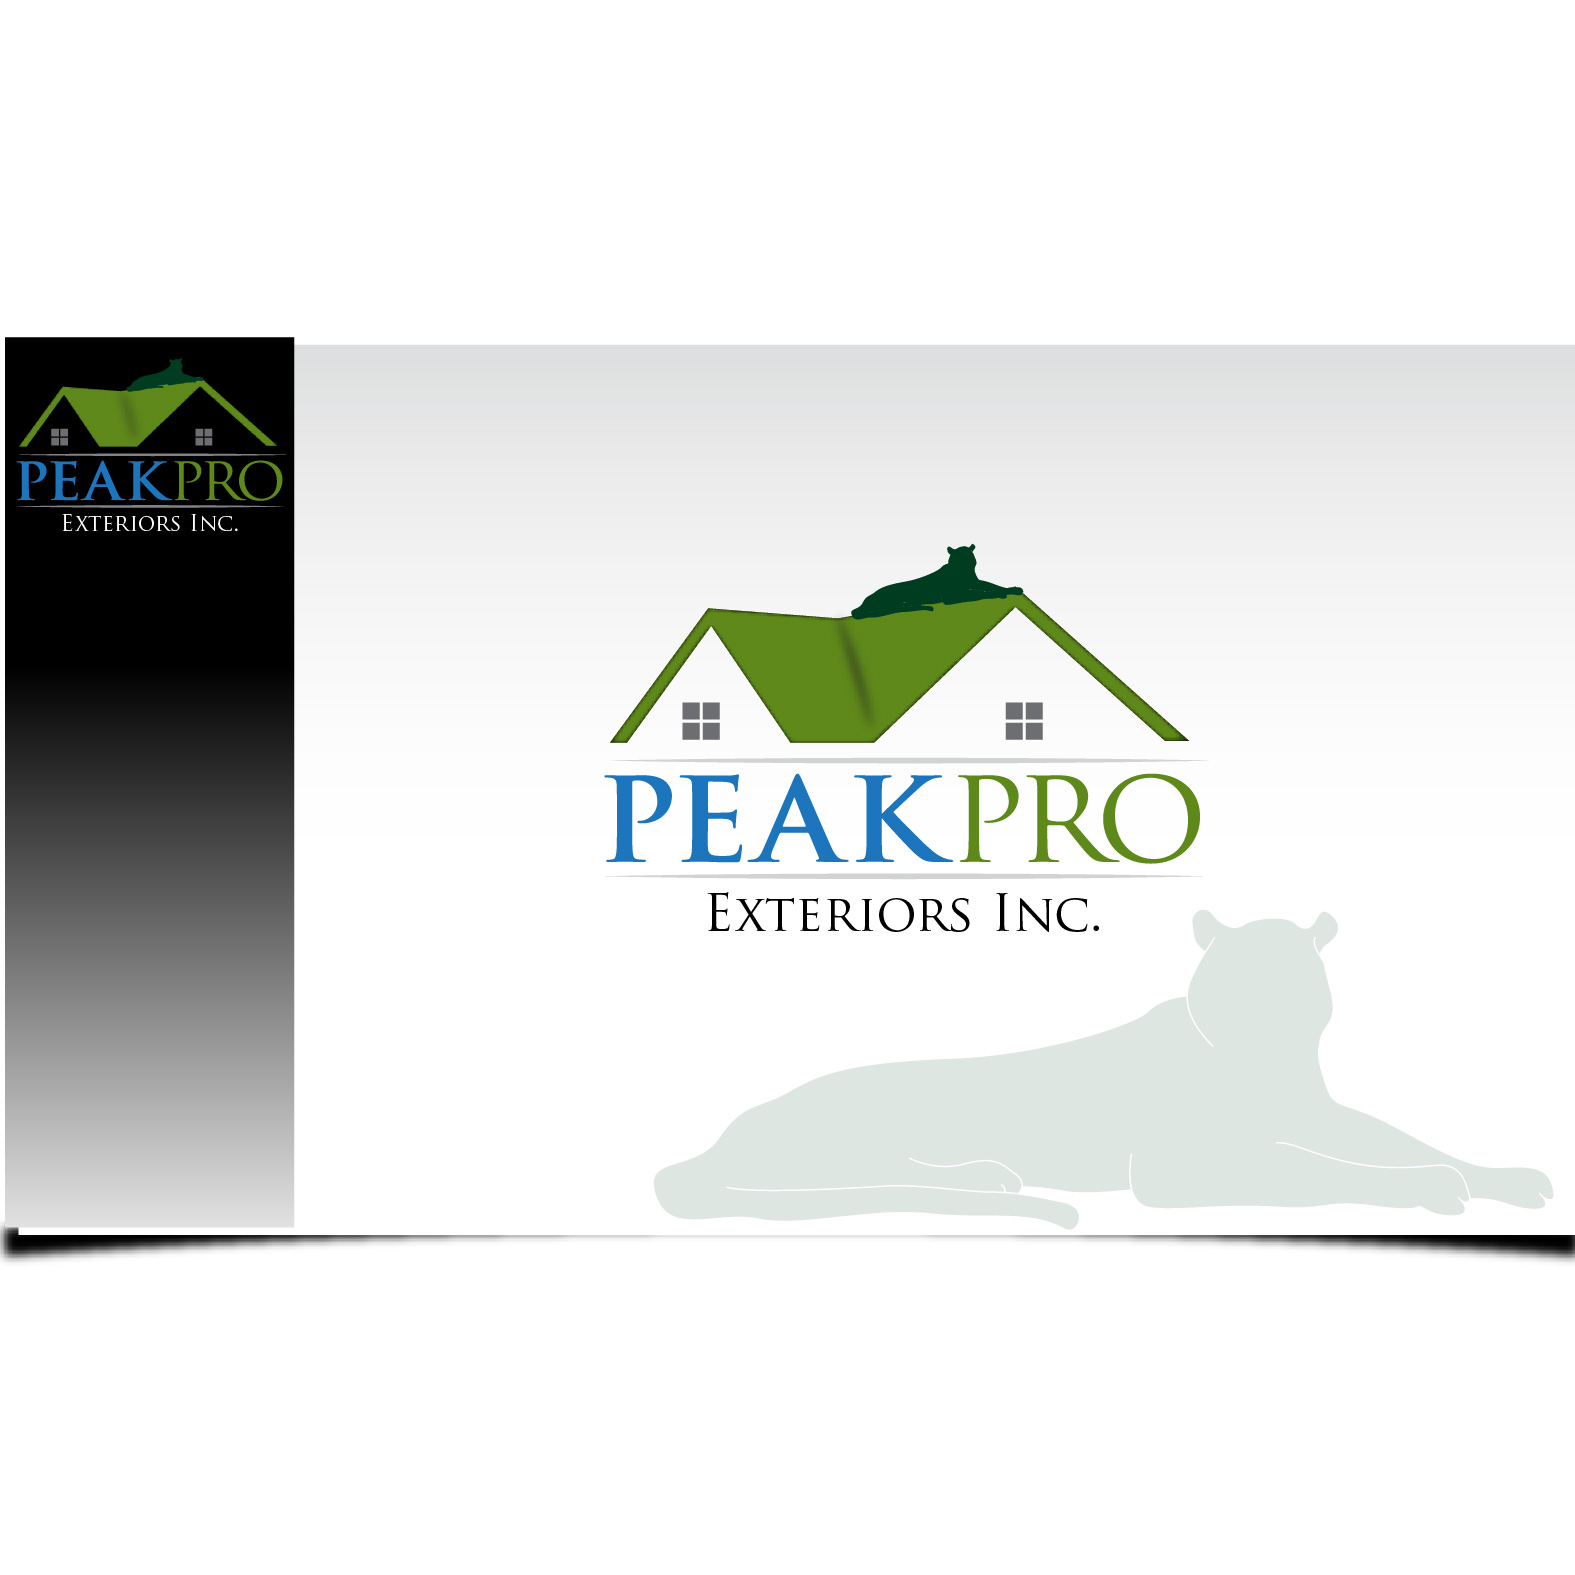 Logo Design by Robert Engi - Entry No. 141 in the Logo Design Contest Captivating Logo Design for Peakpro Exteriors Inc..